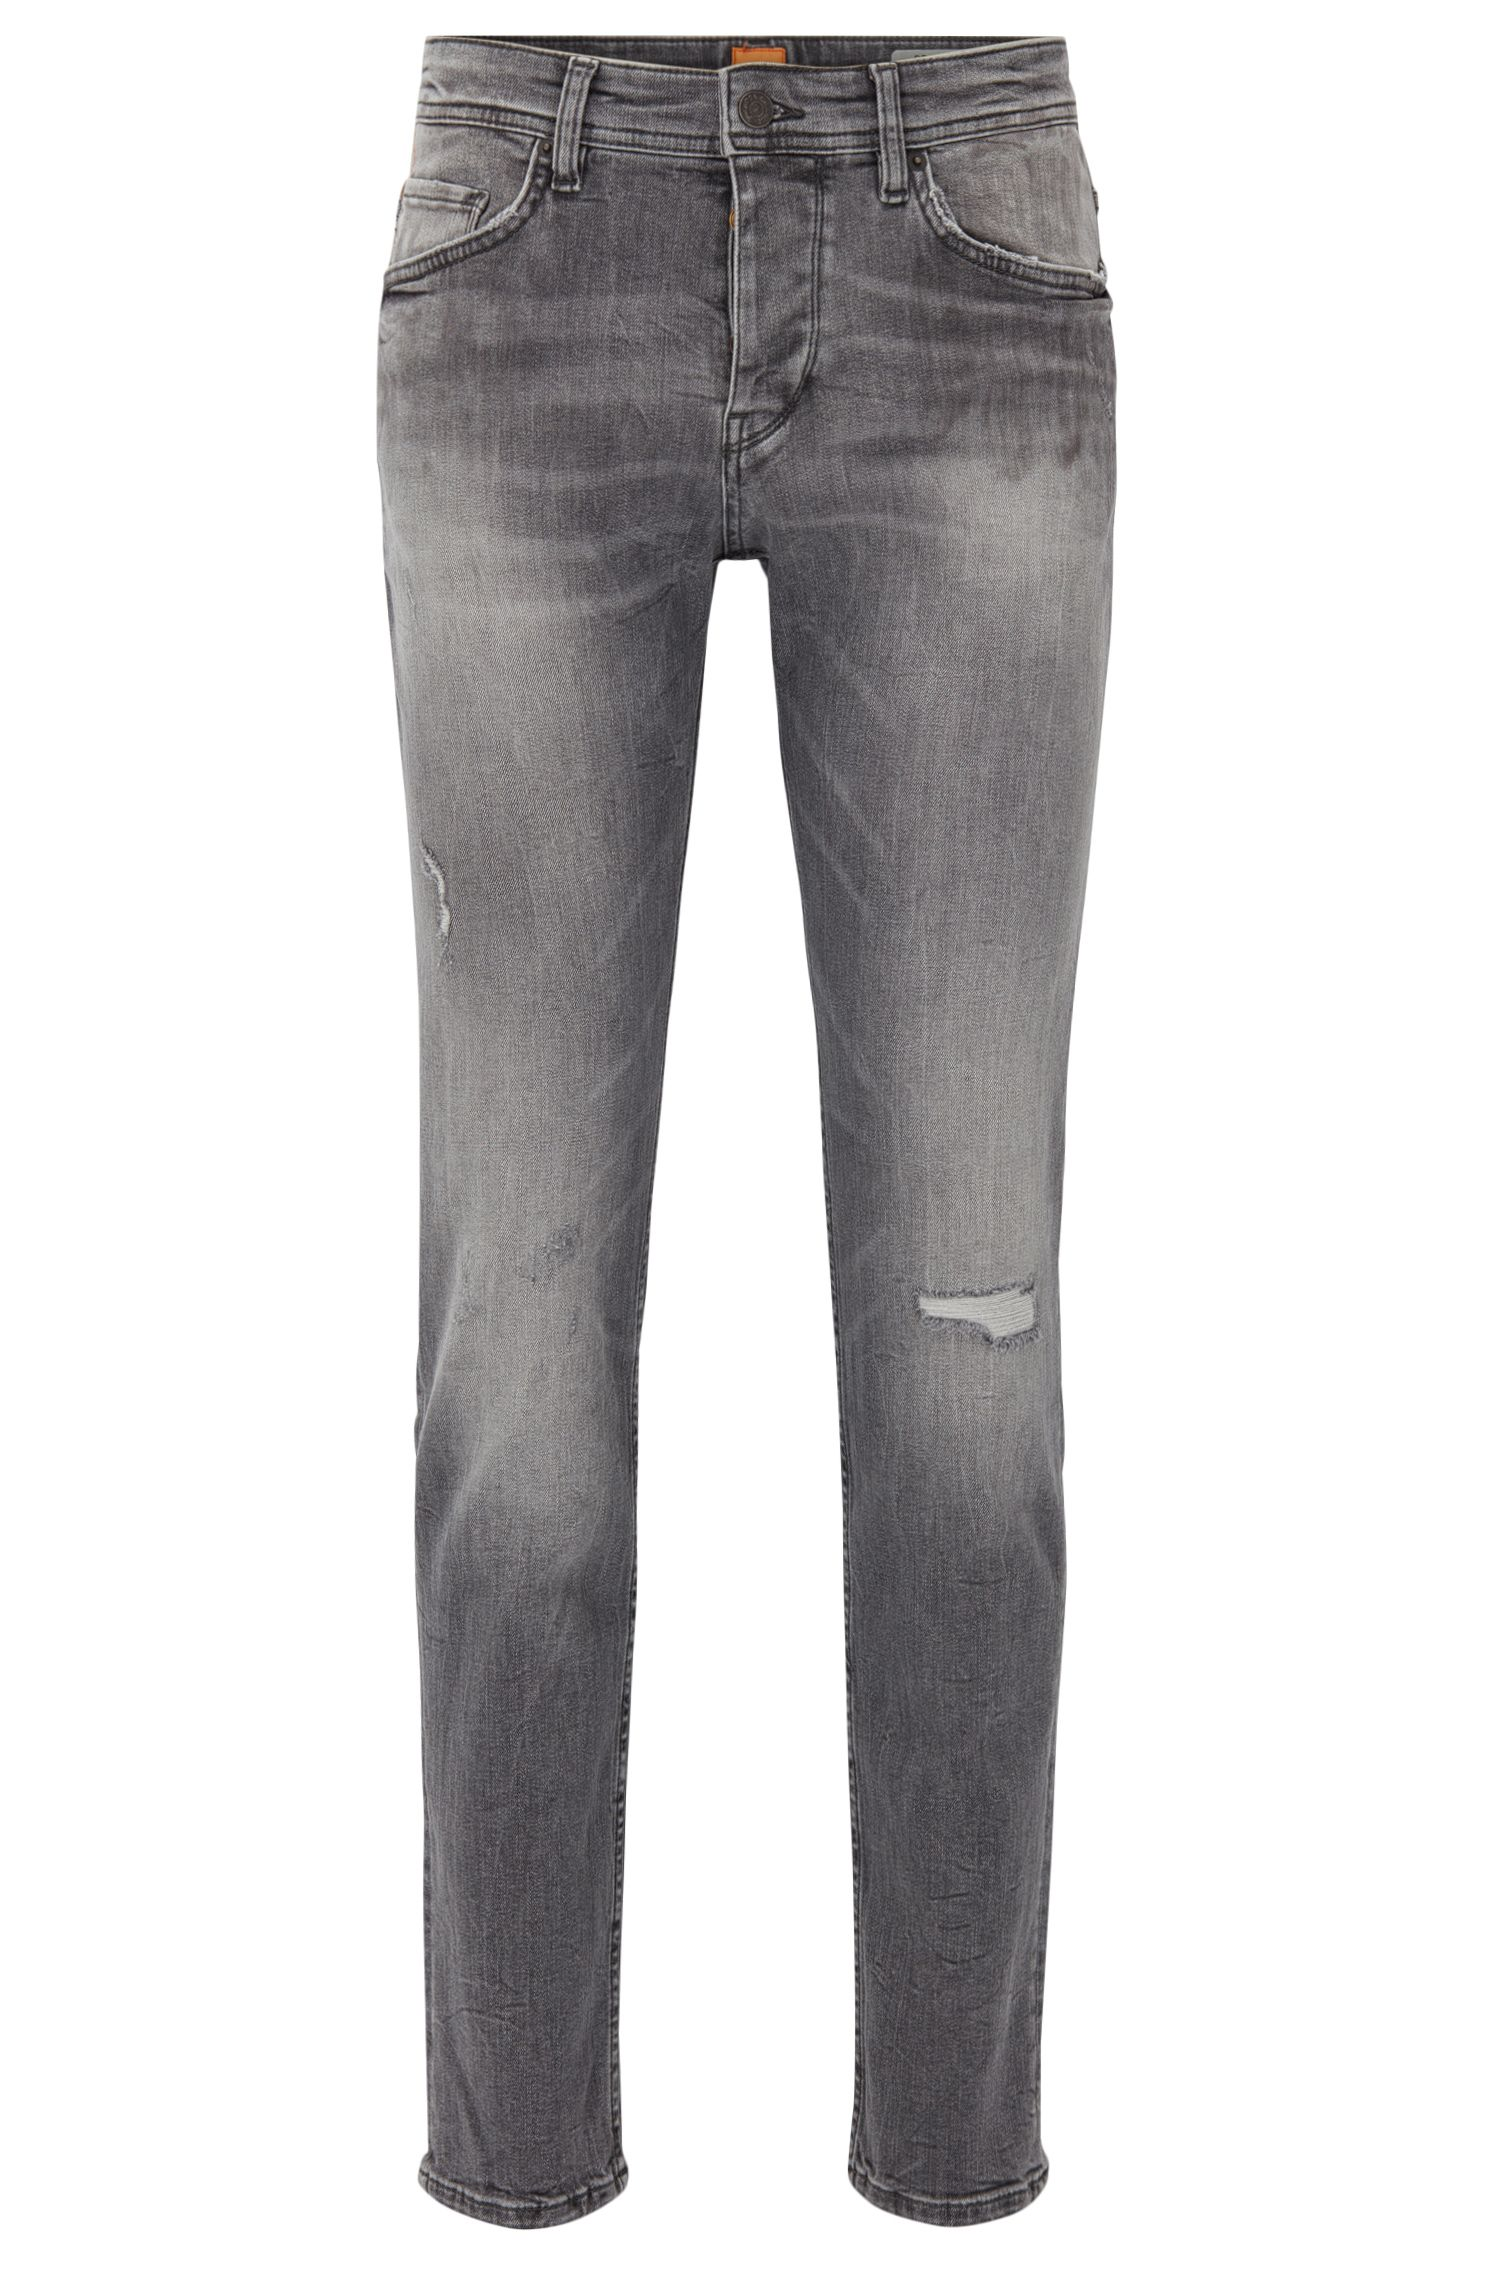 Zwarte tapered-fit jeans van gerecycled stretchdenim